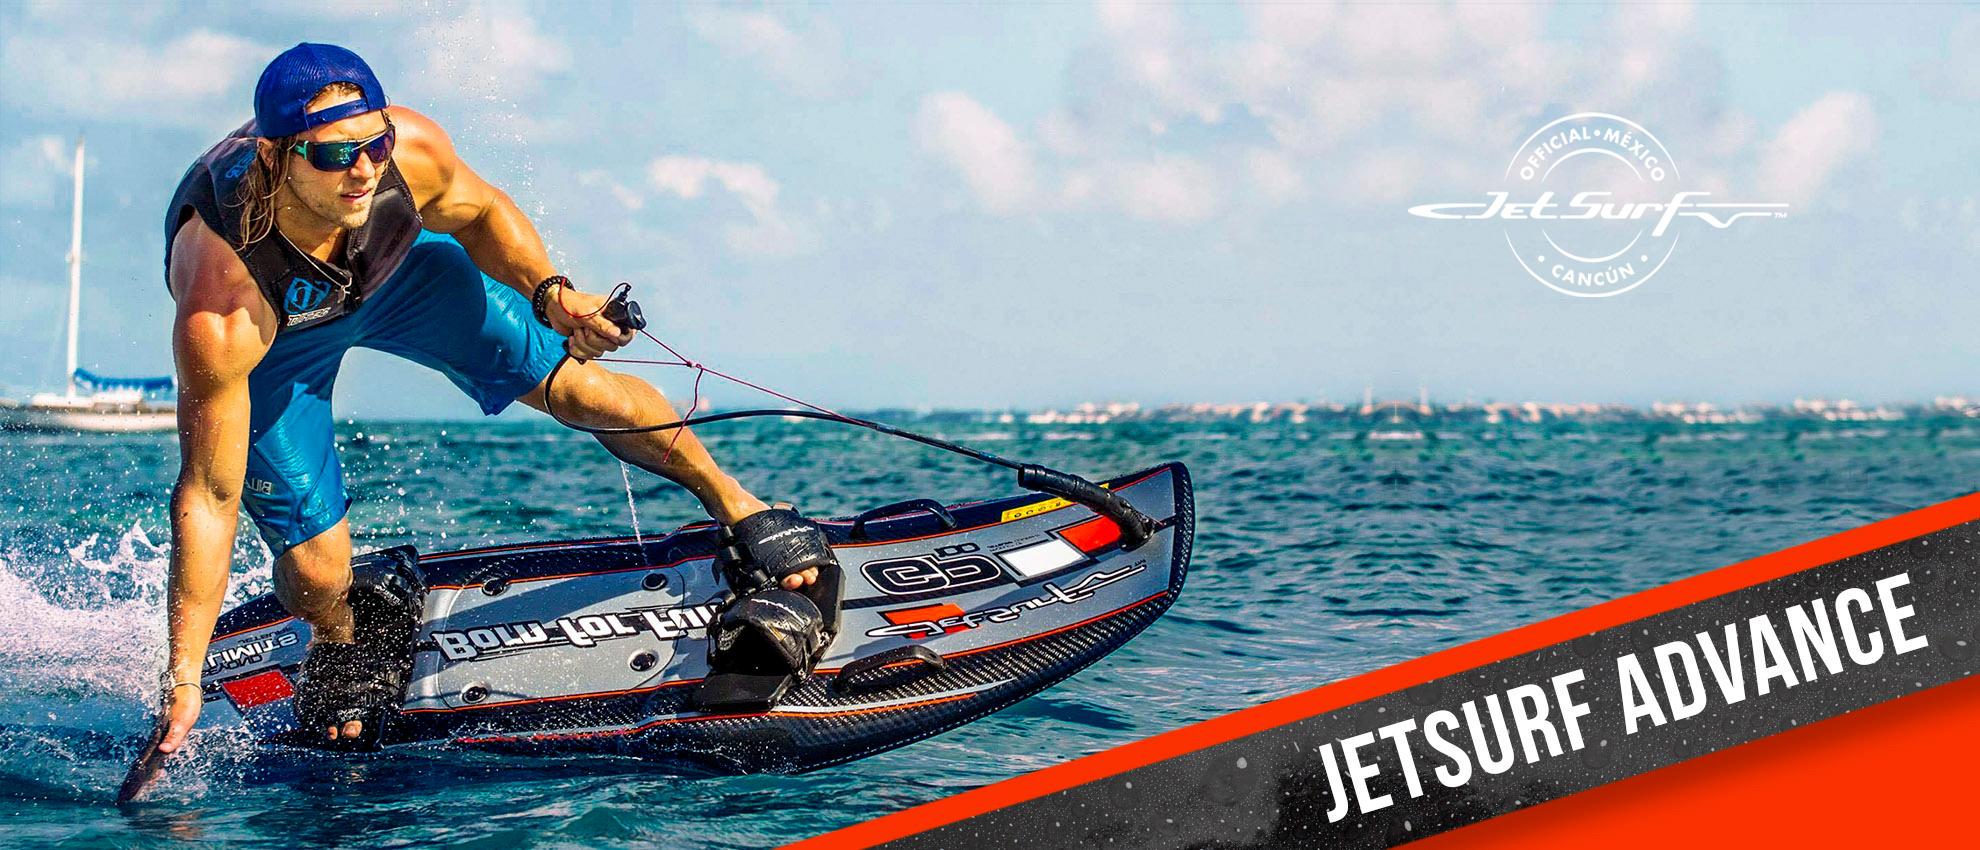 Jetsurf advance